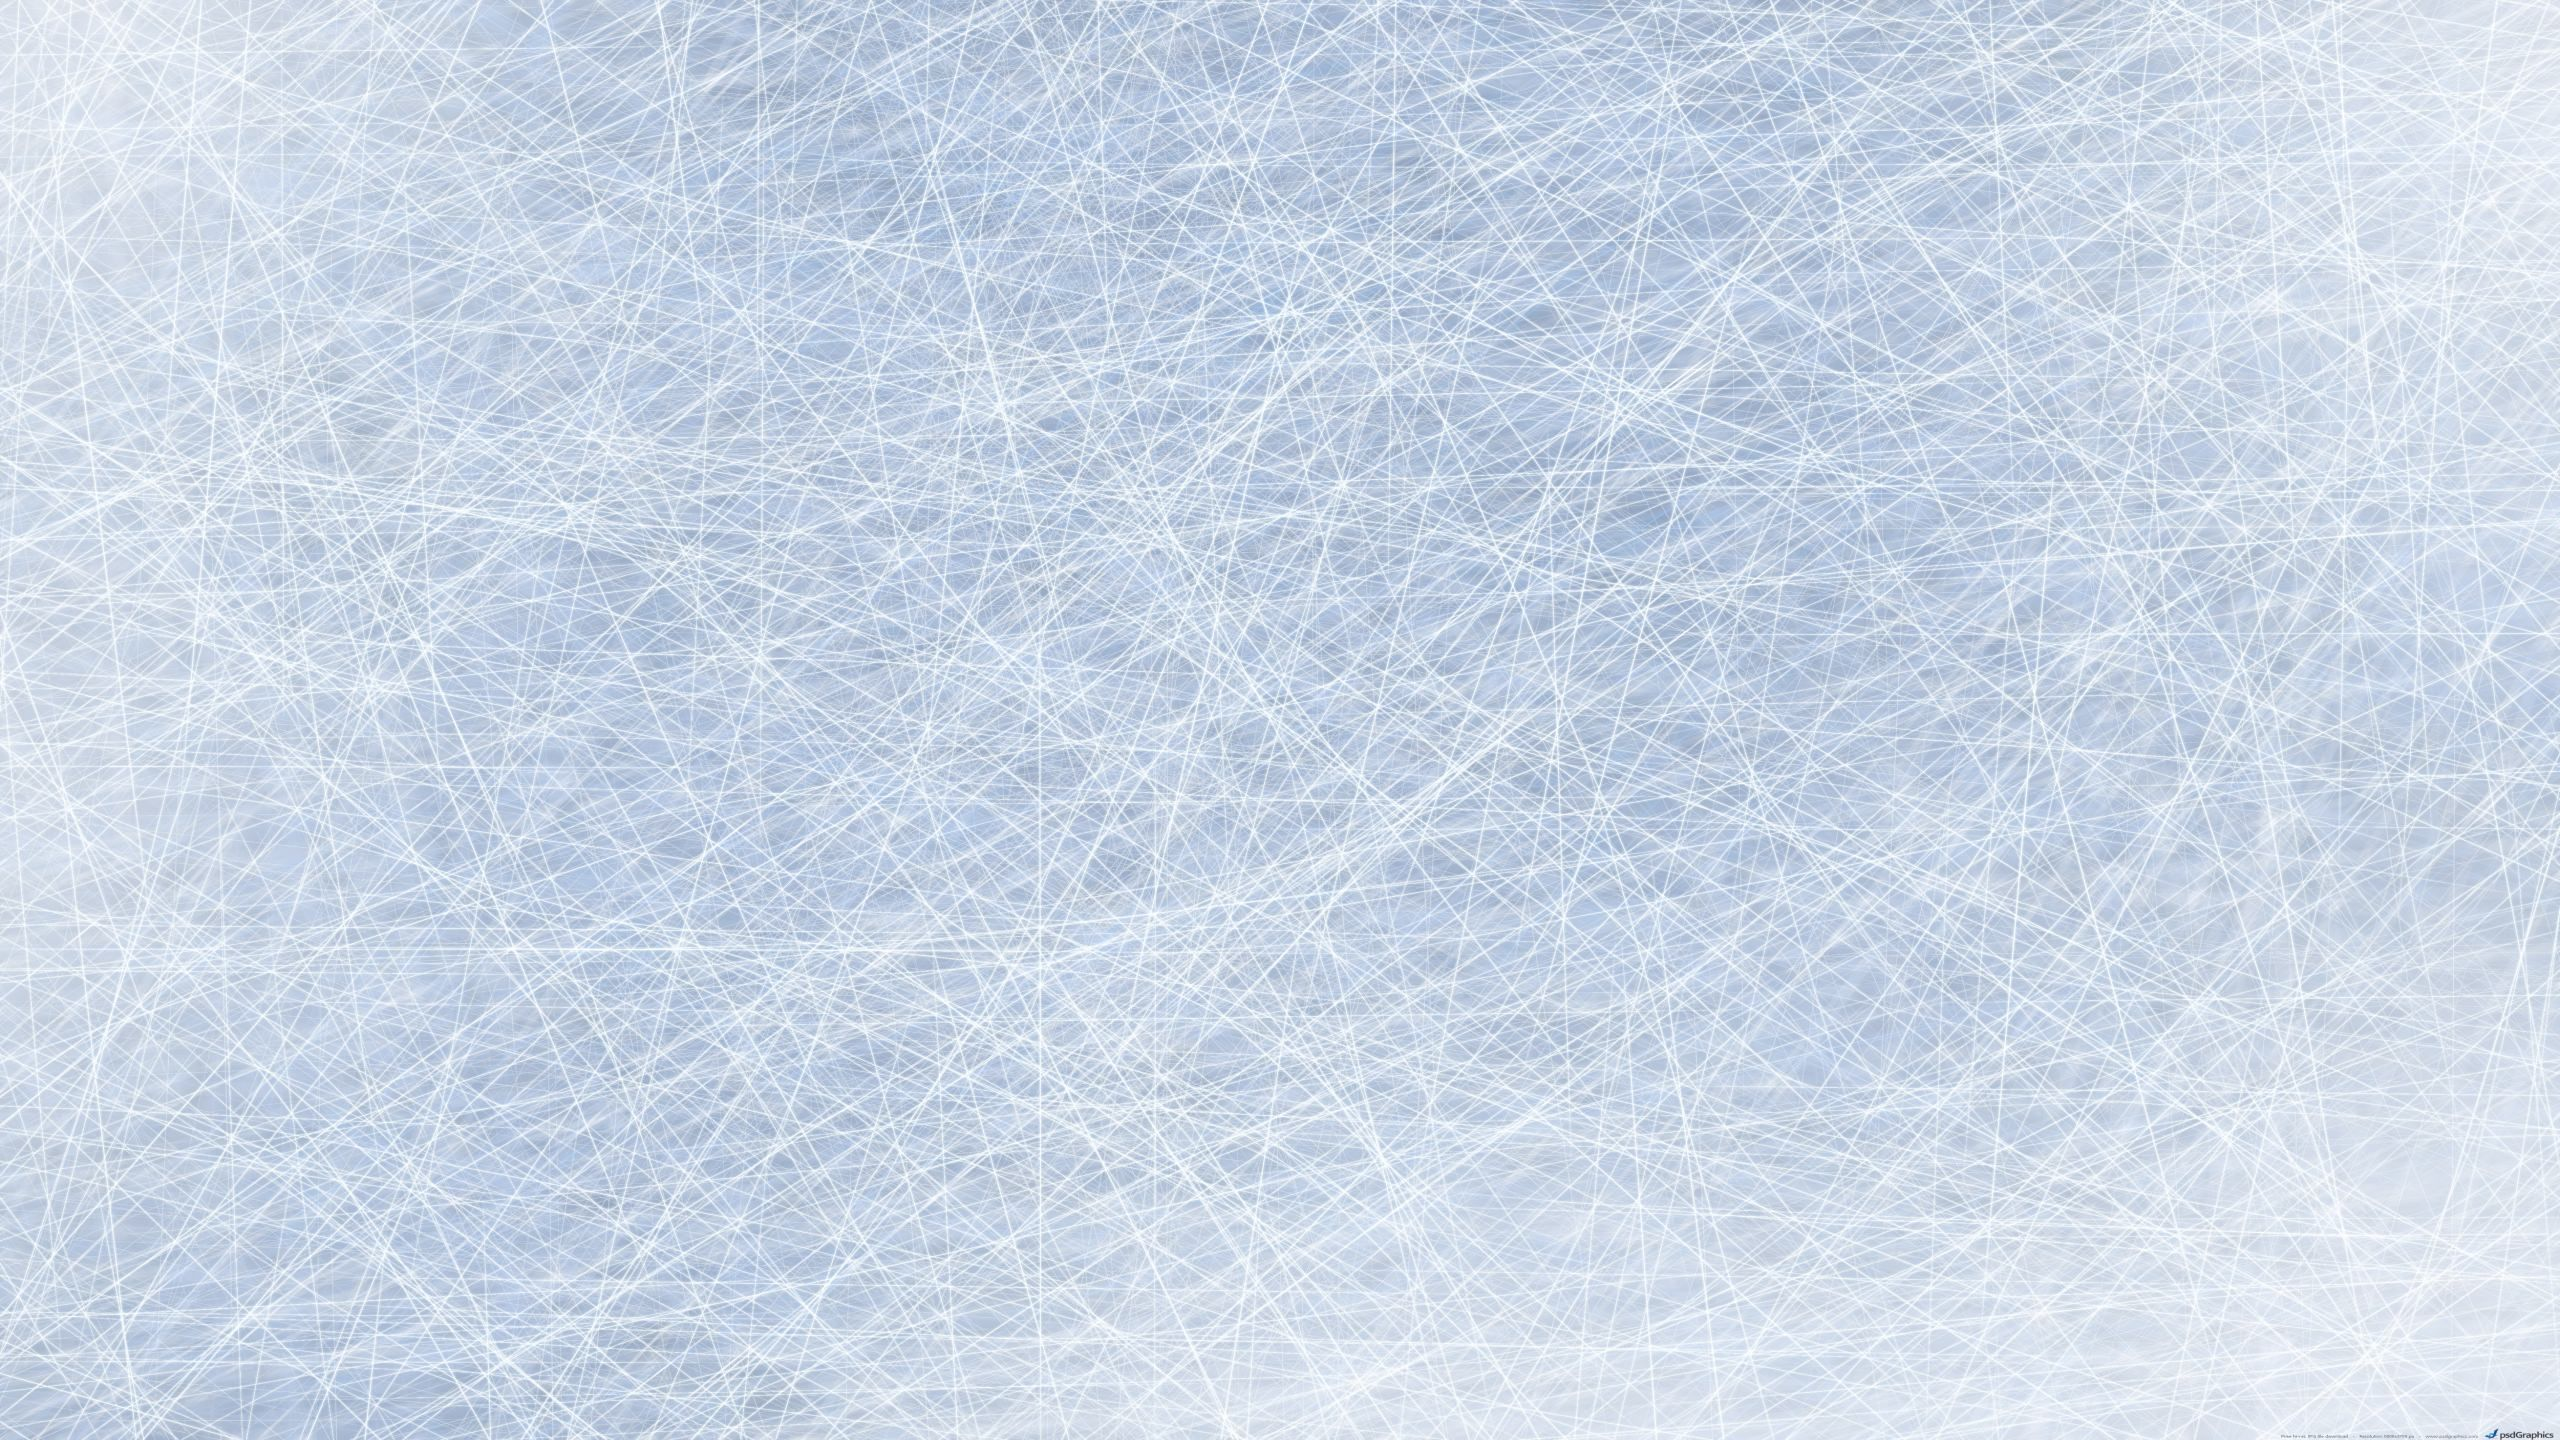 Ice Hd Pictures Jpg 2560 1440 Ice Hockey Ice Texture Hockey Pictures